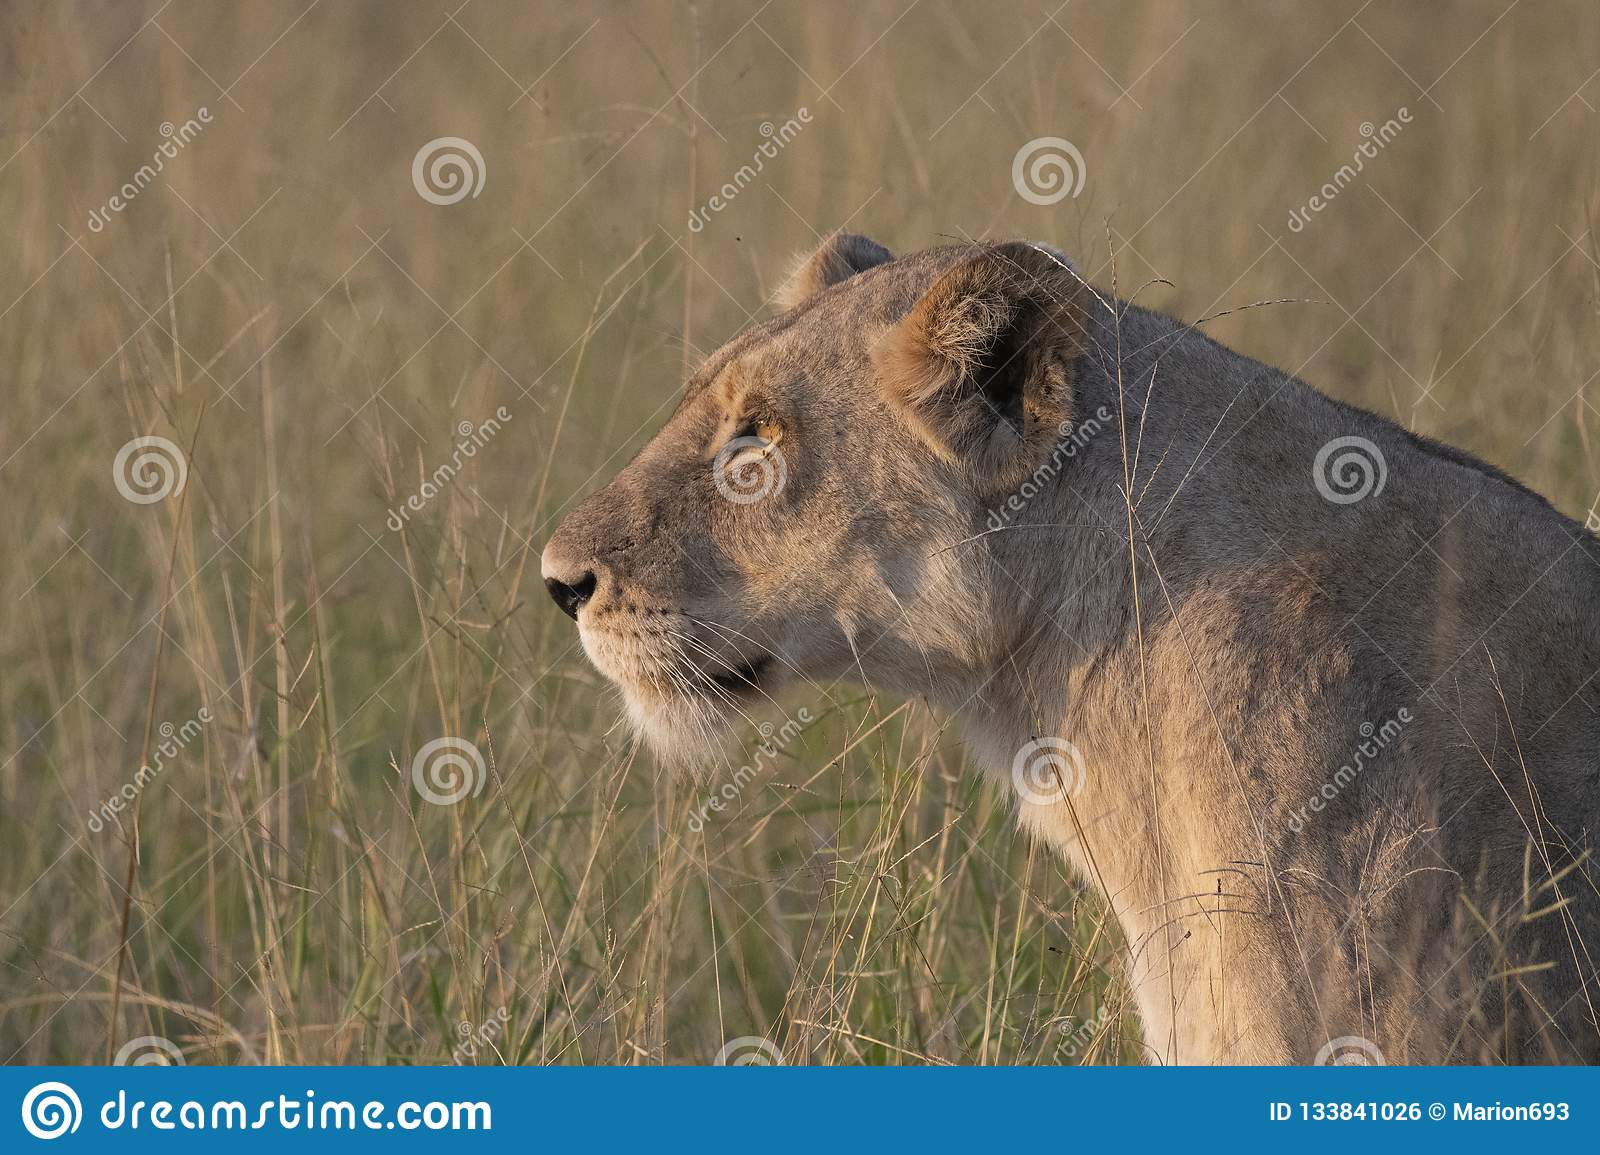 Close up of Lioness head as she looks to the left with evening sun shining on her fur